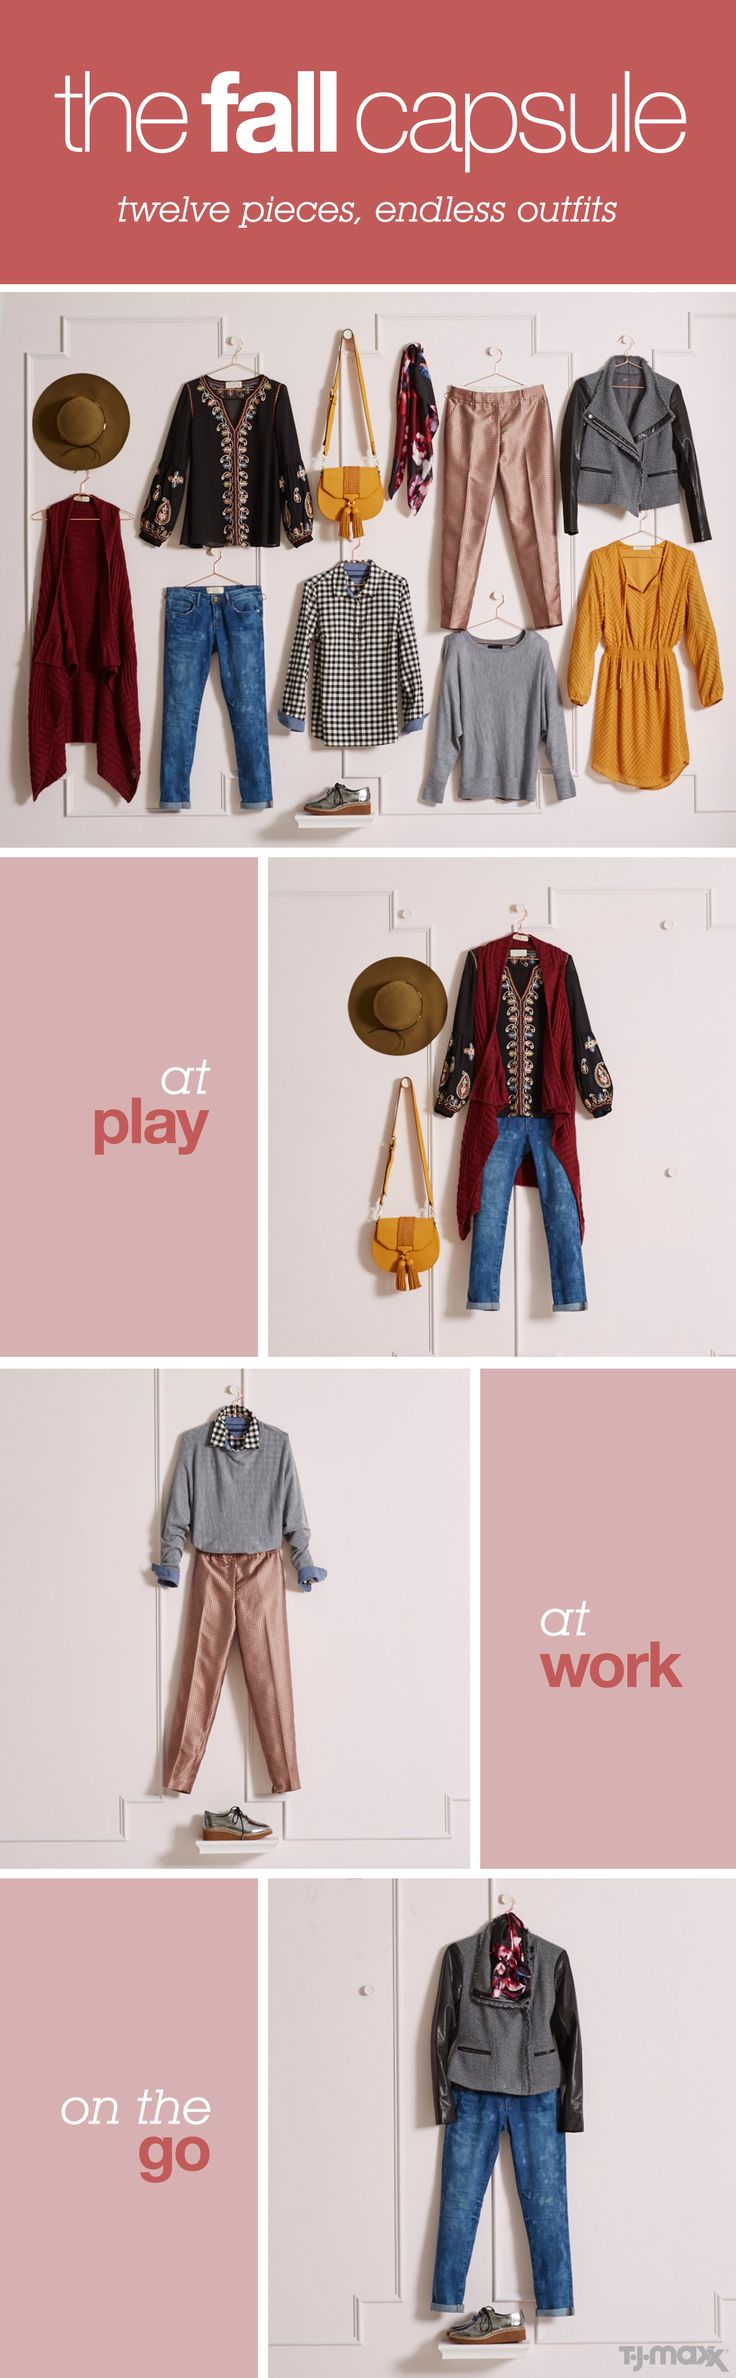 The keys to your fall capsule wardrobe are versatile pieces with lots of layers and textures to take you from the office to weekend brunch. Start with jeans and a pair of slim pants, which you can easily dress up or down. For tops, make sure to bring in slouchy sweaters, at least one collared shirt in a classic pattern like plaid, and a vest or other layering piece. Shop fall looks at tjmaxx.com.